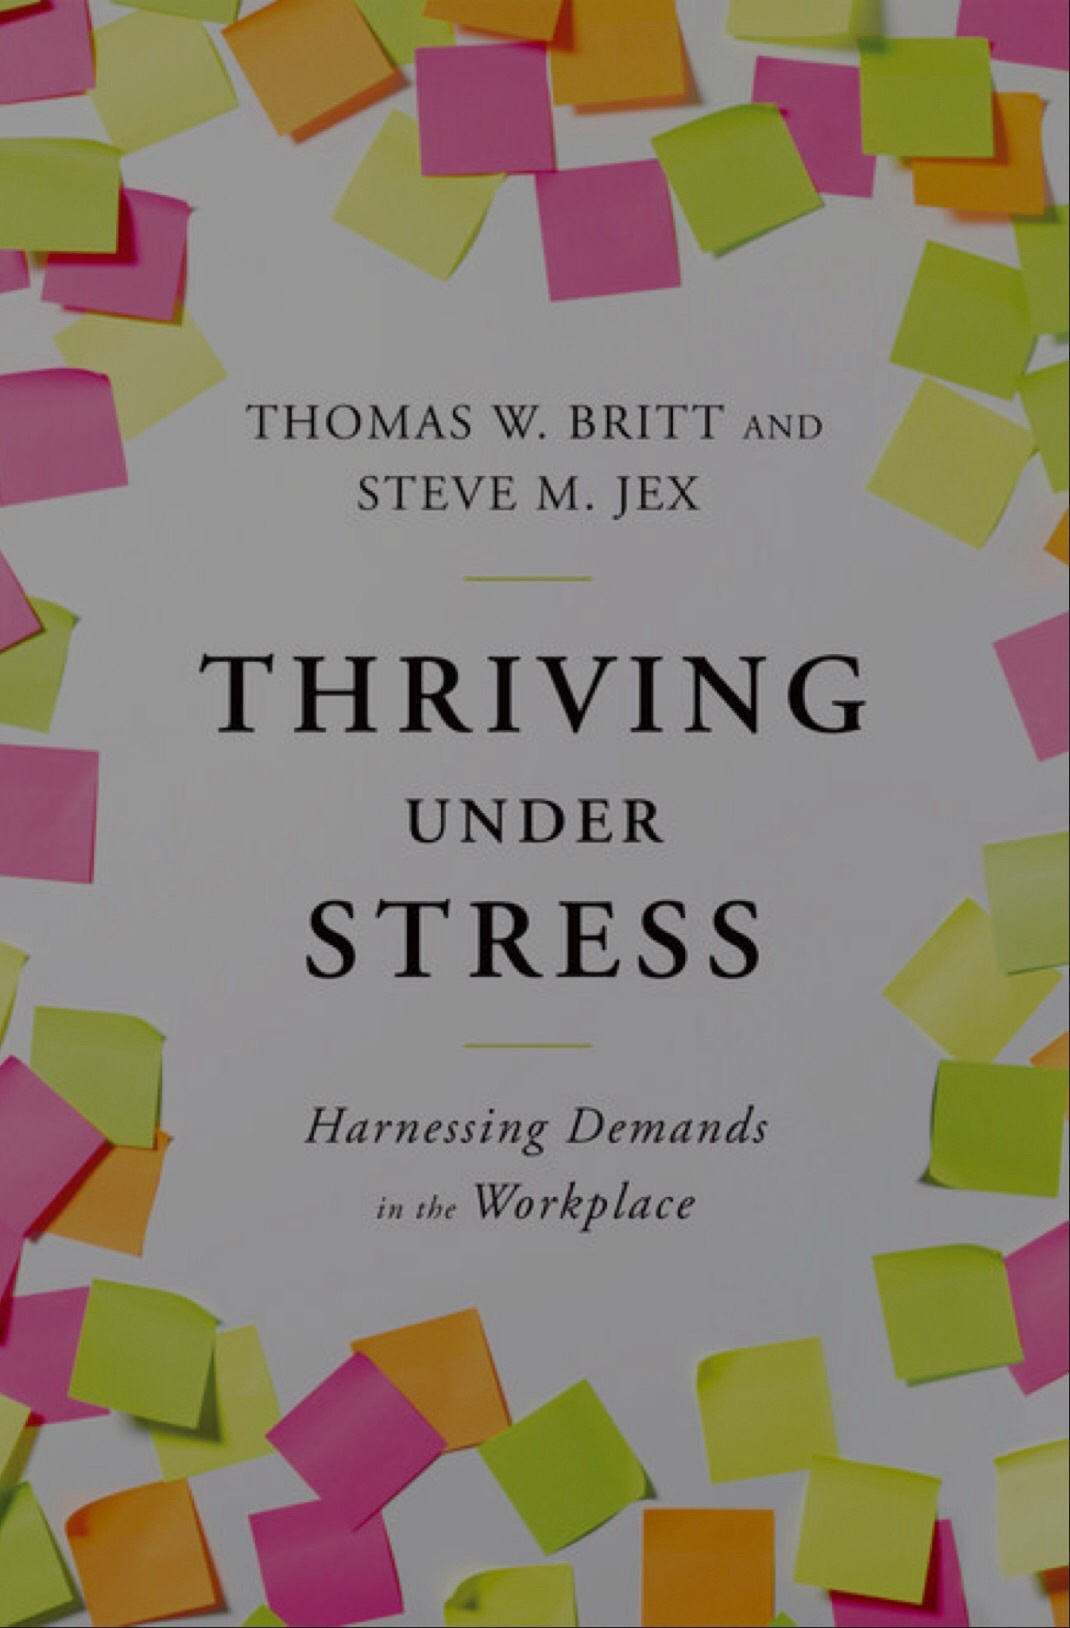 Thriving Under Stress: Harnessing Demands in the Workplace  by  Thomas W. Britt